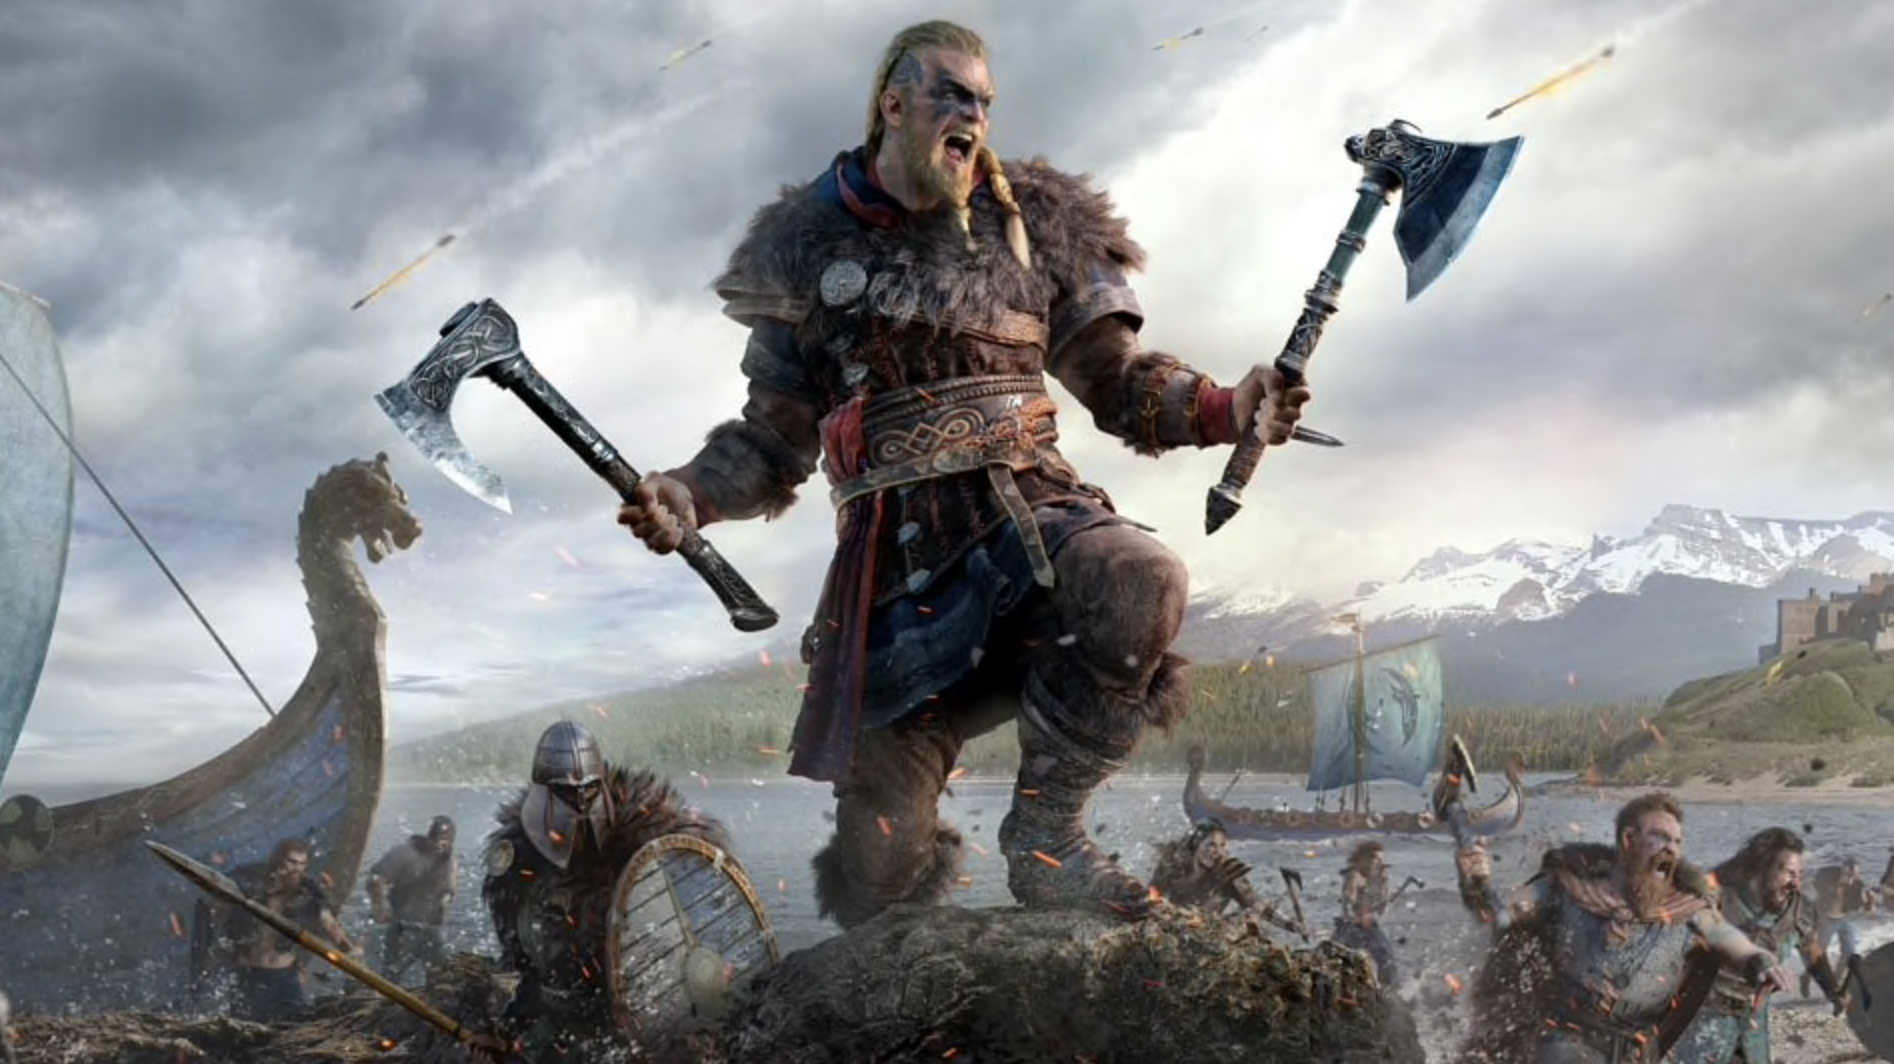 'Assassin's Creed Valhalla' puts players in the role of a powerful Viking.